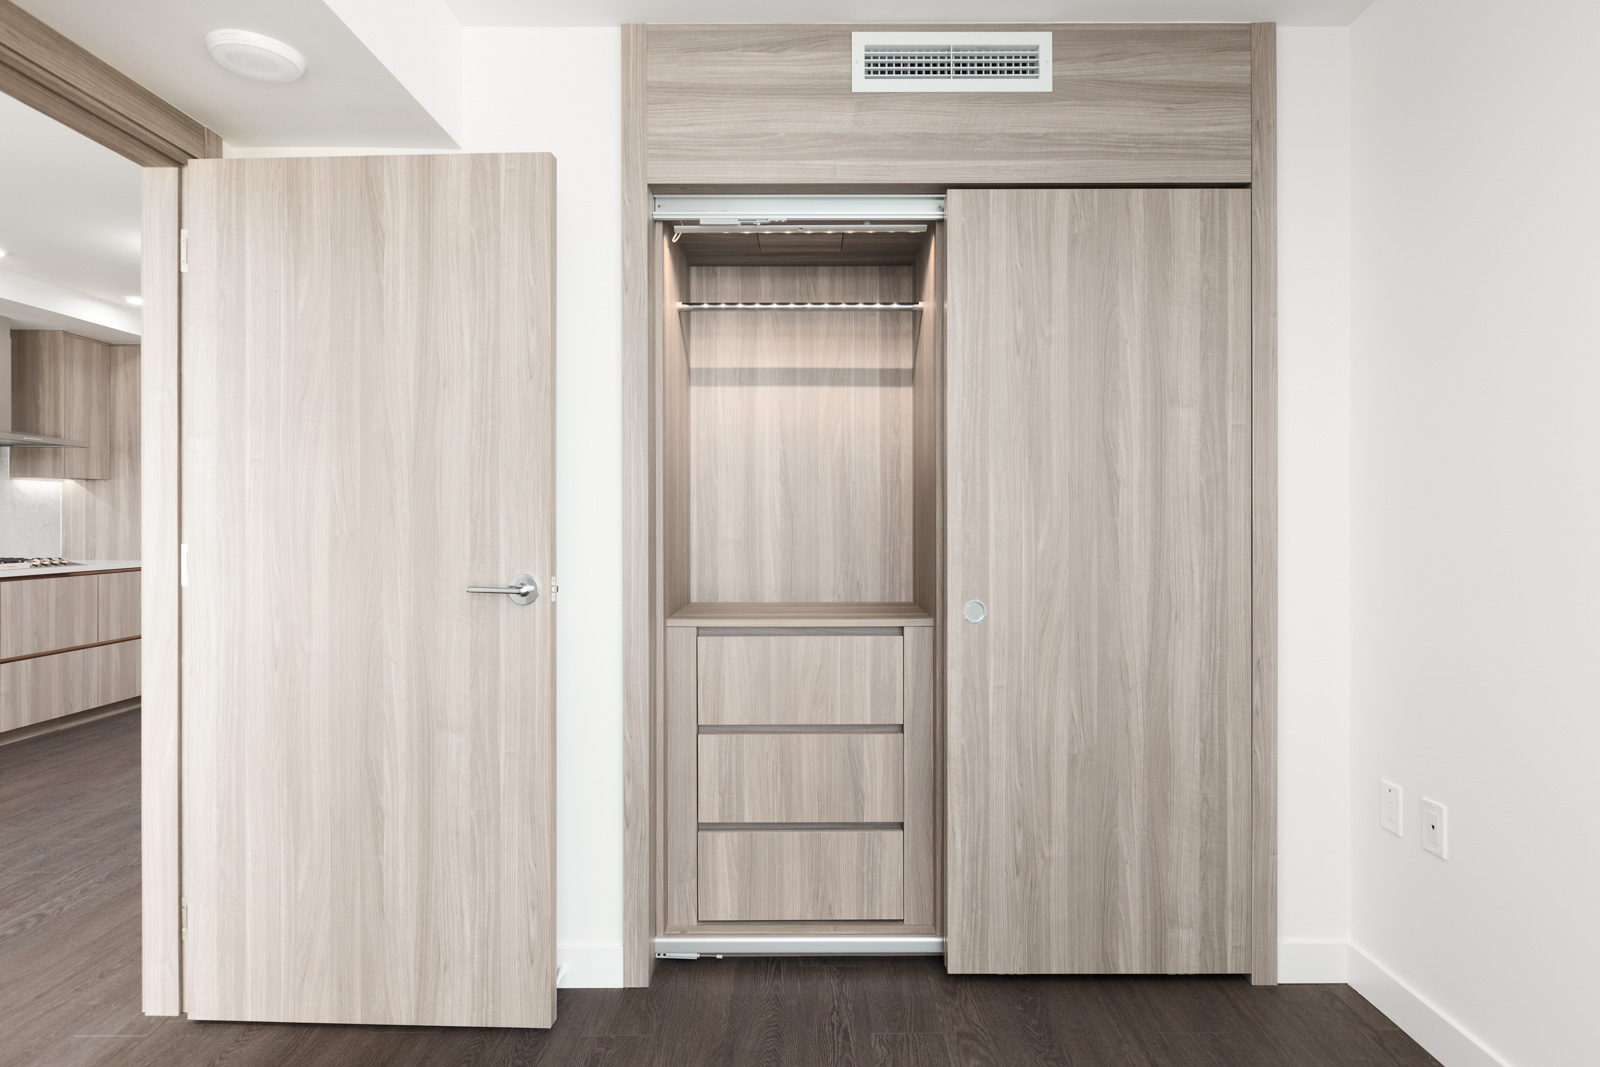 Closet with built-ins at Marine and Cambie condo